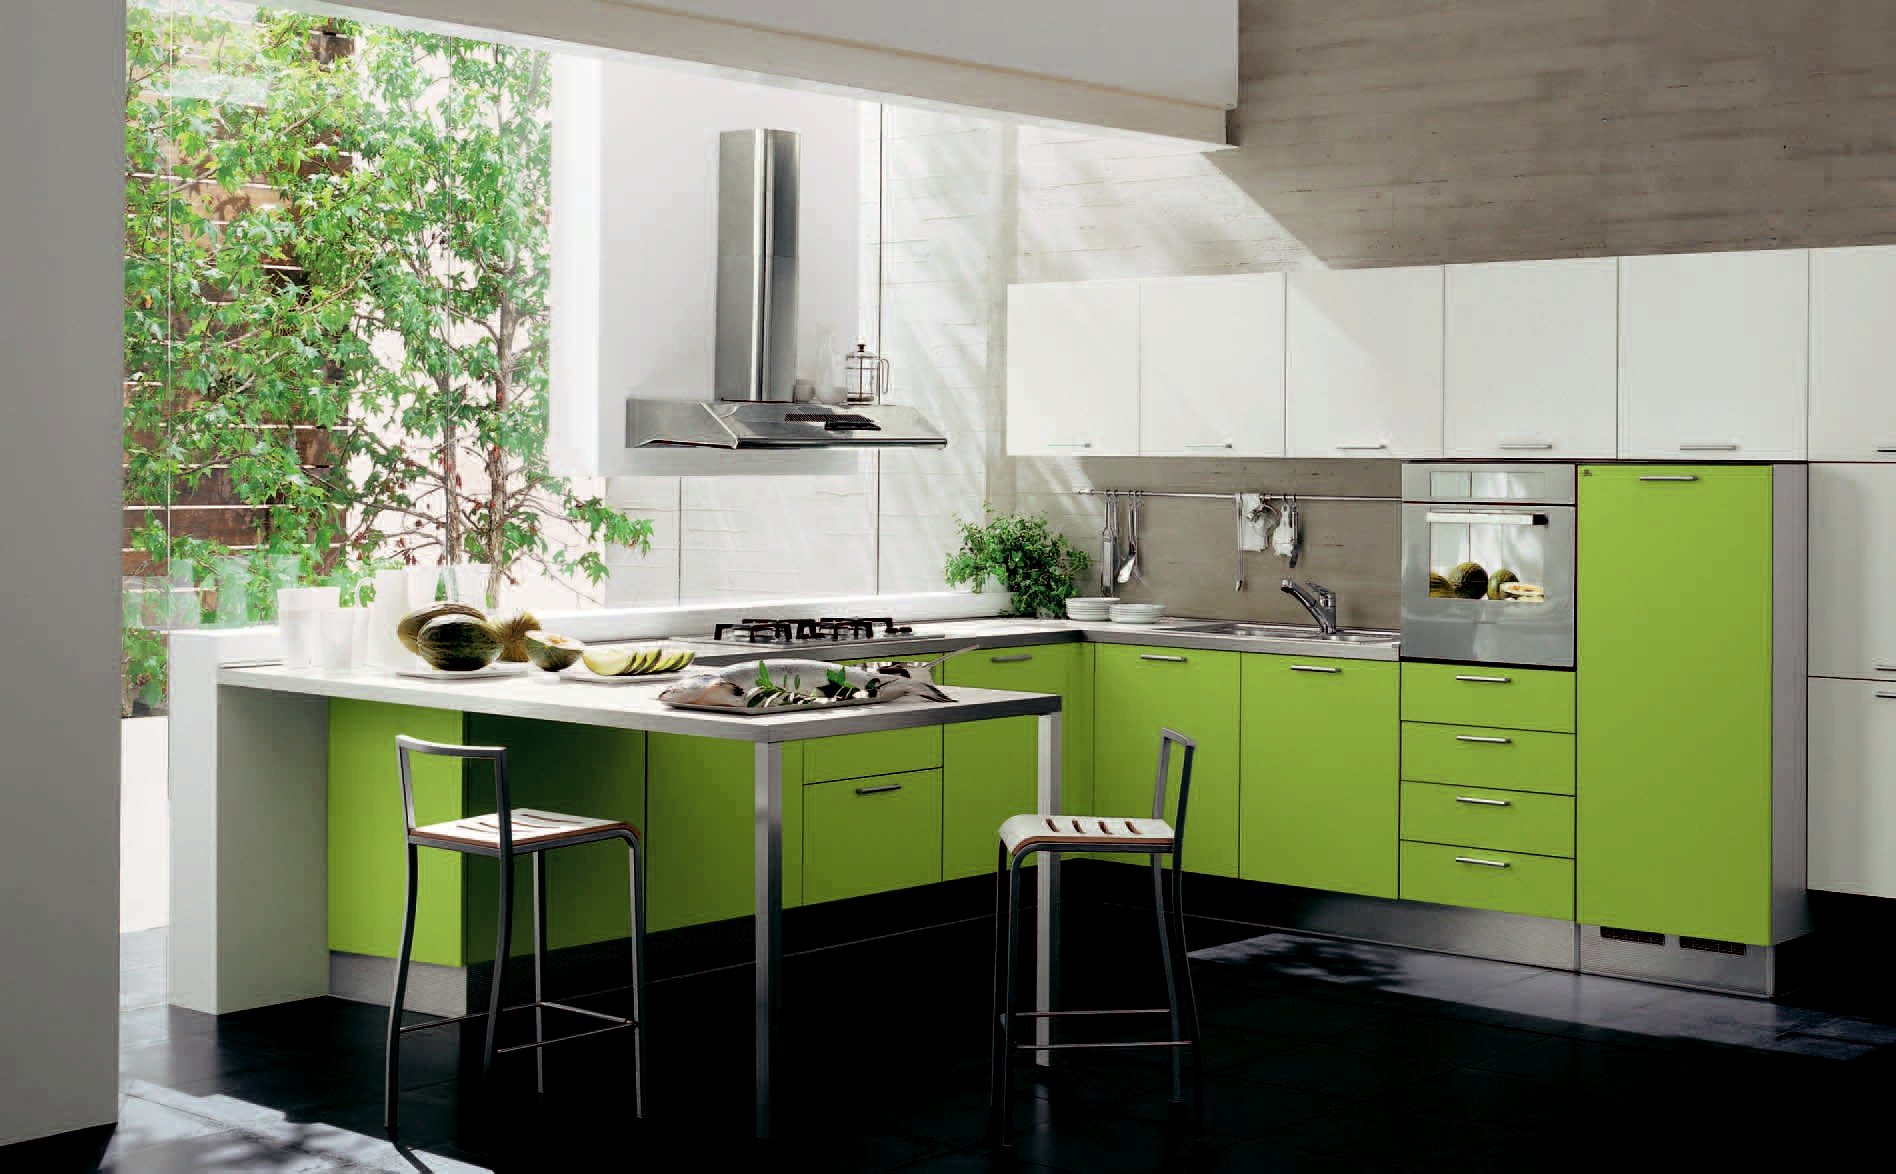 Fabulous Green Kitchen Design 1896 x 1174 · 777 kB · jpeg